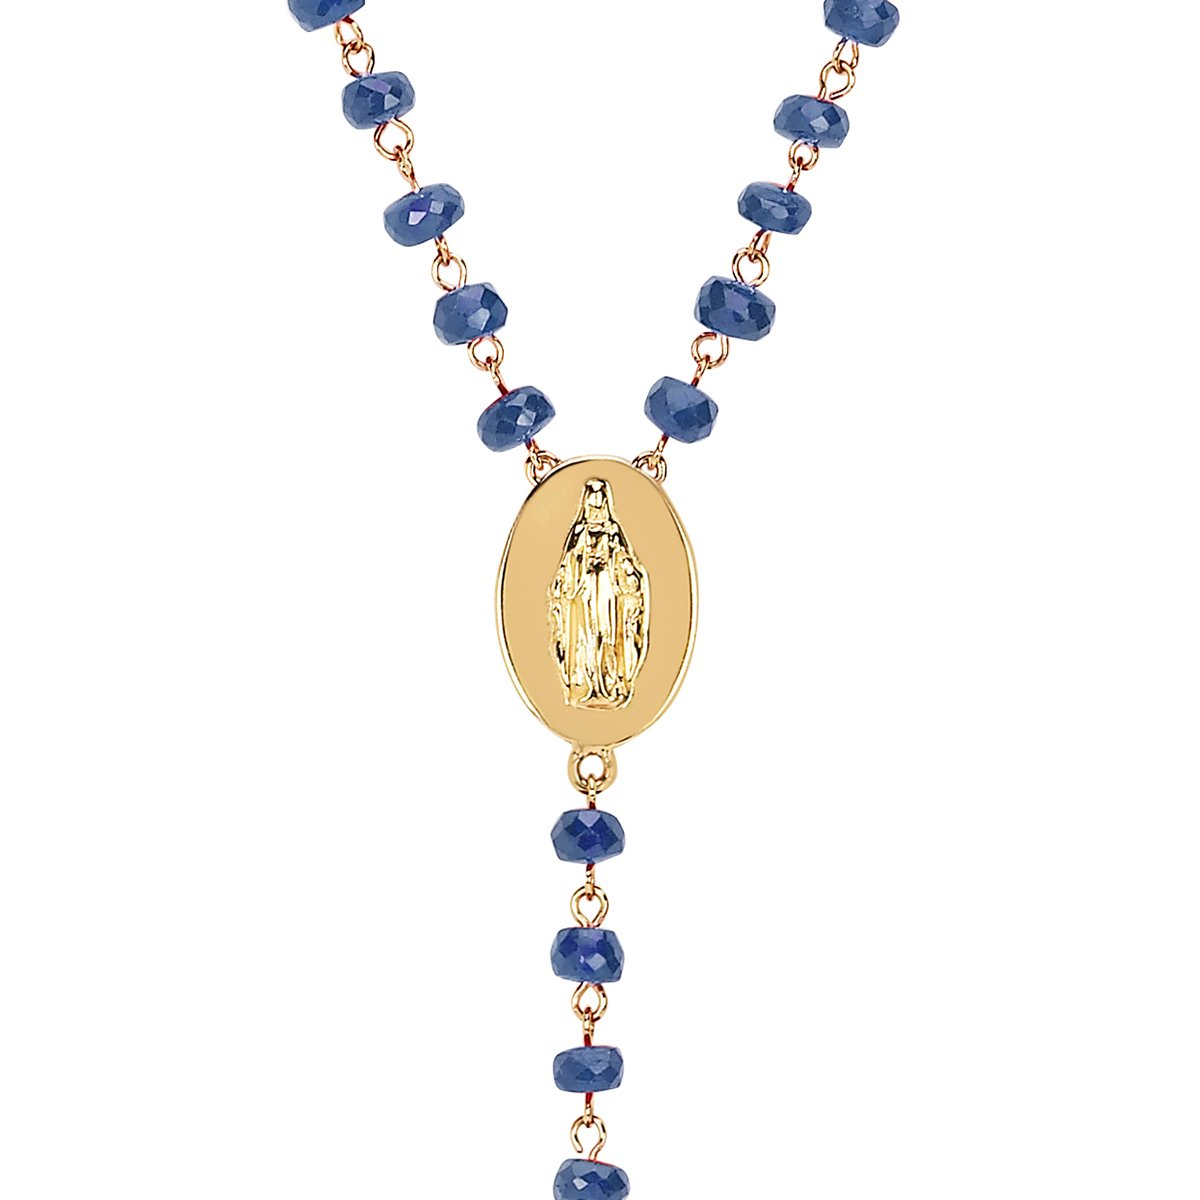 LH x SAINT Sapphire Rosary Cross Necklace